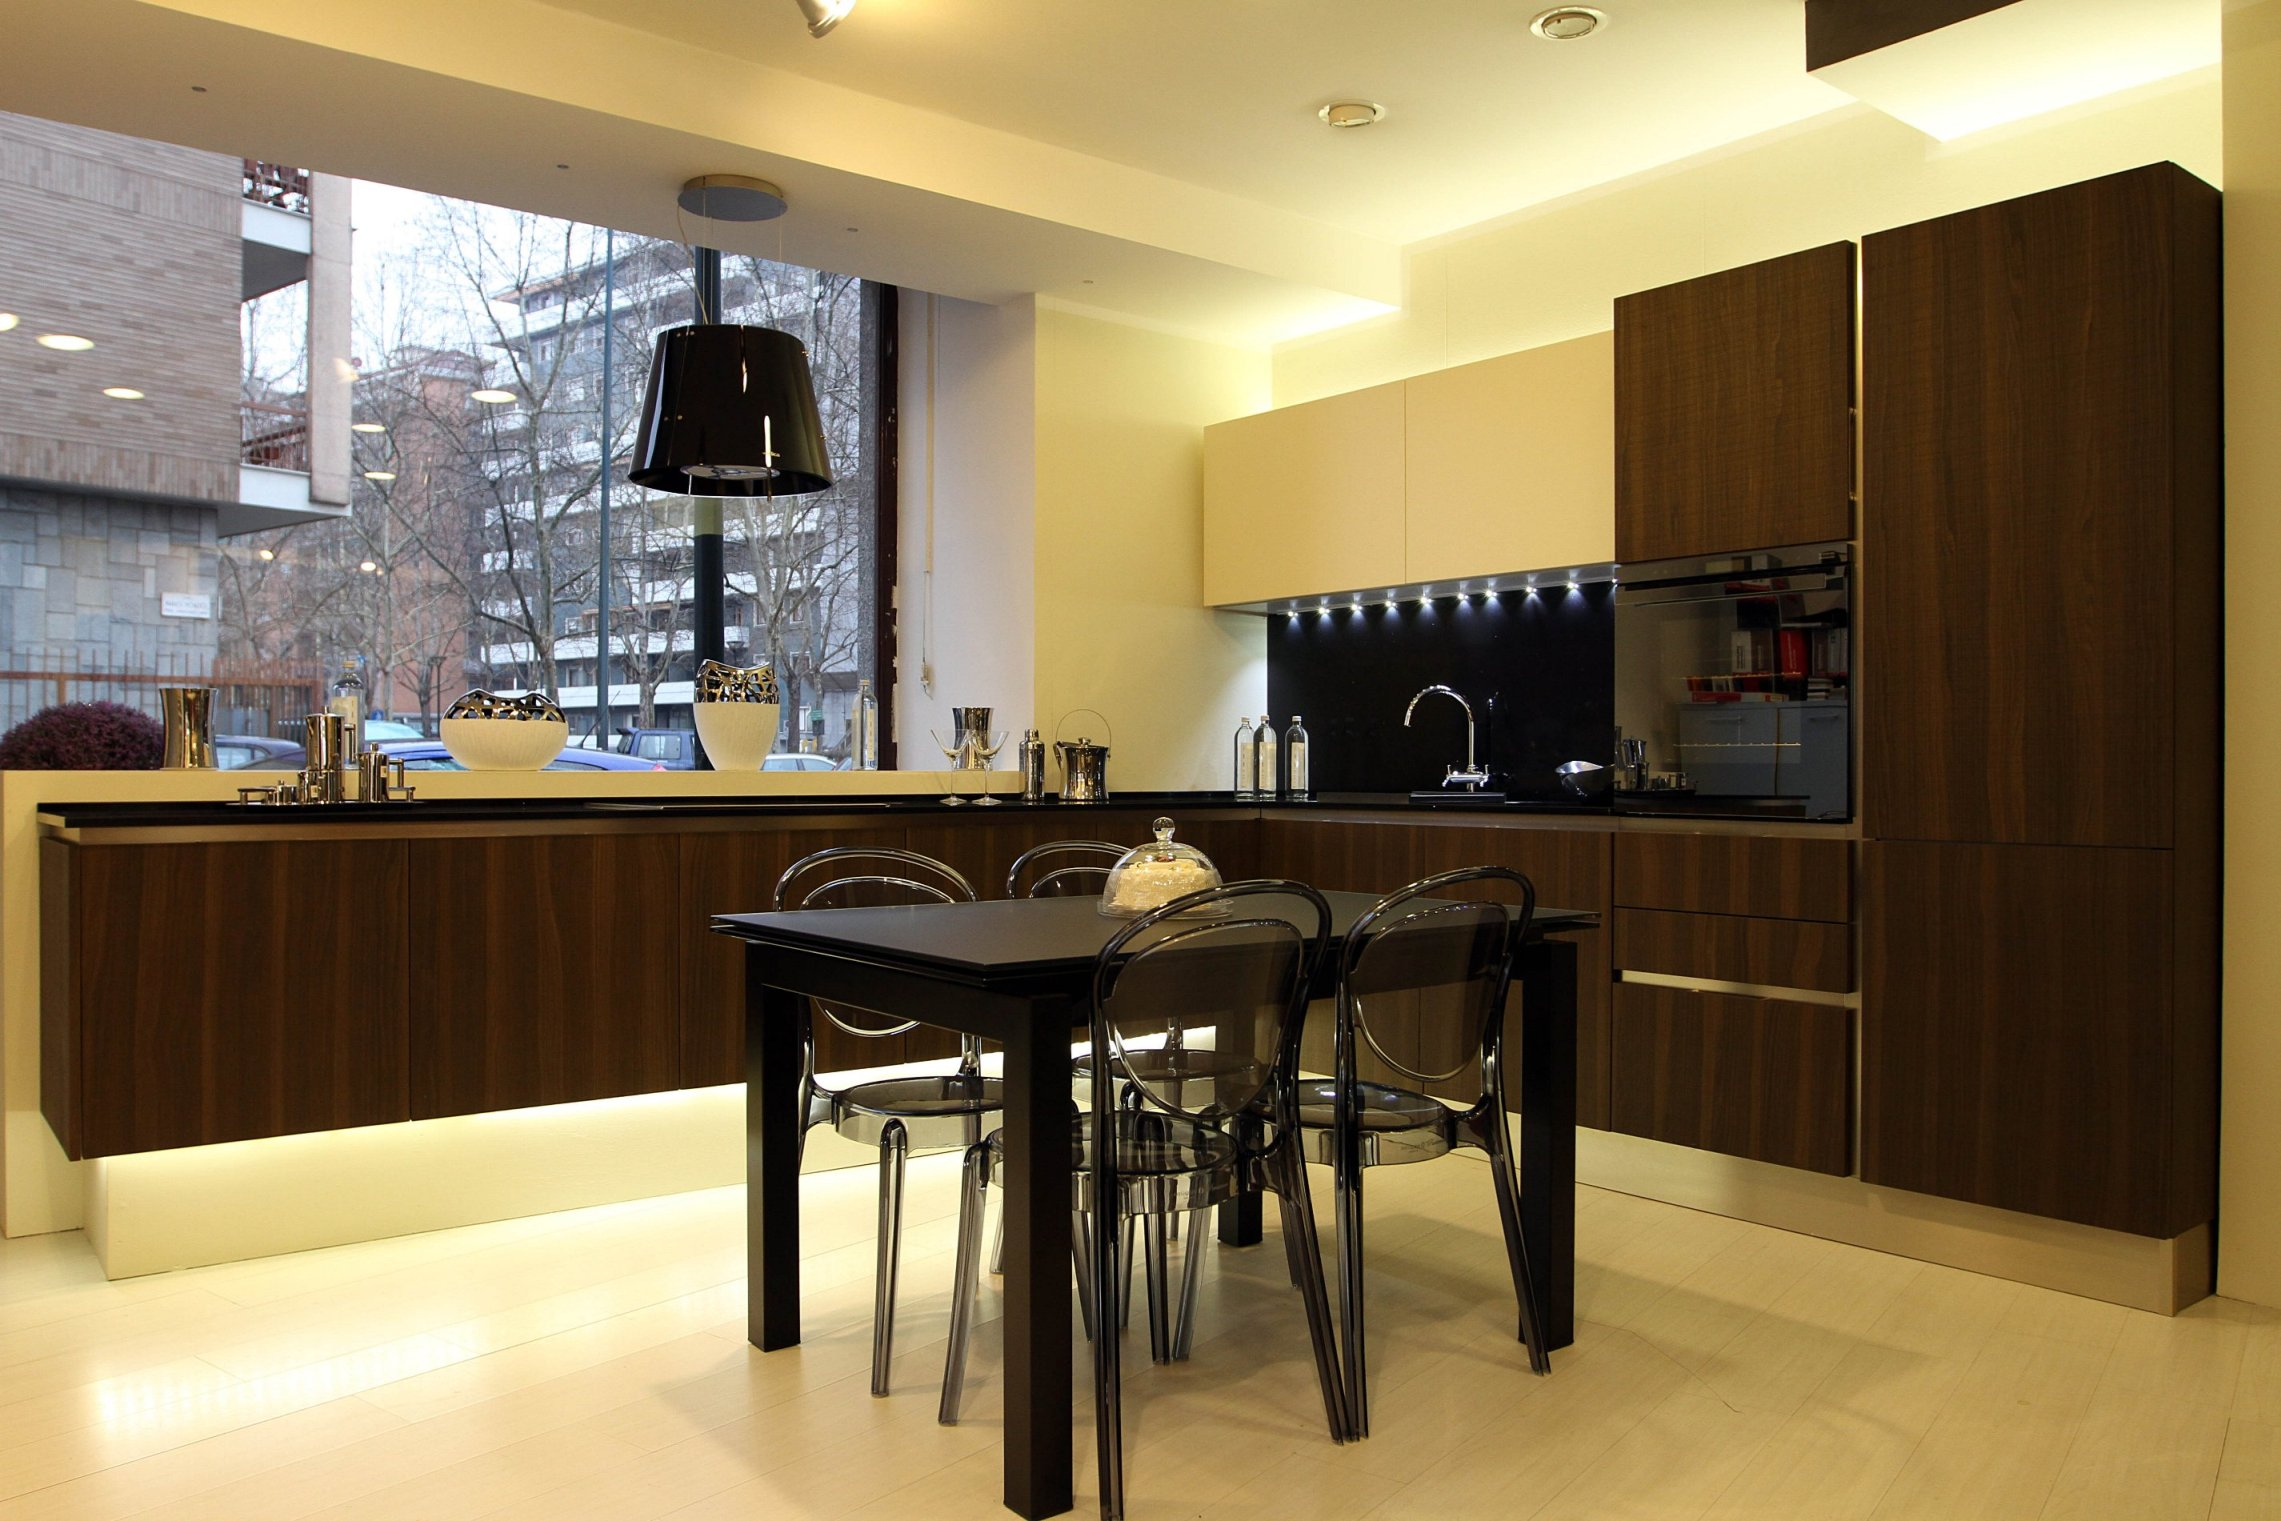 Outlet cucine componibili fabulous cucine componibili for Cucine in outlet